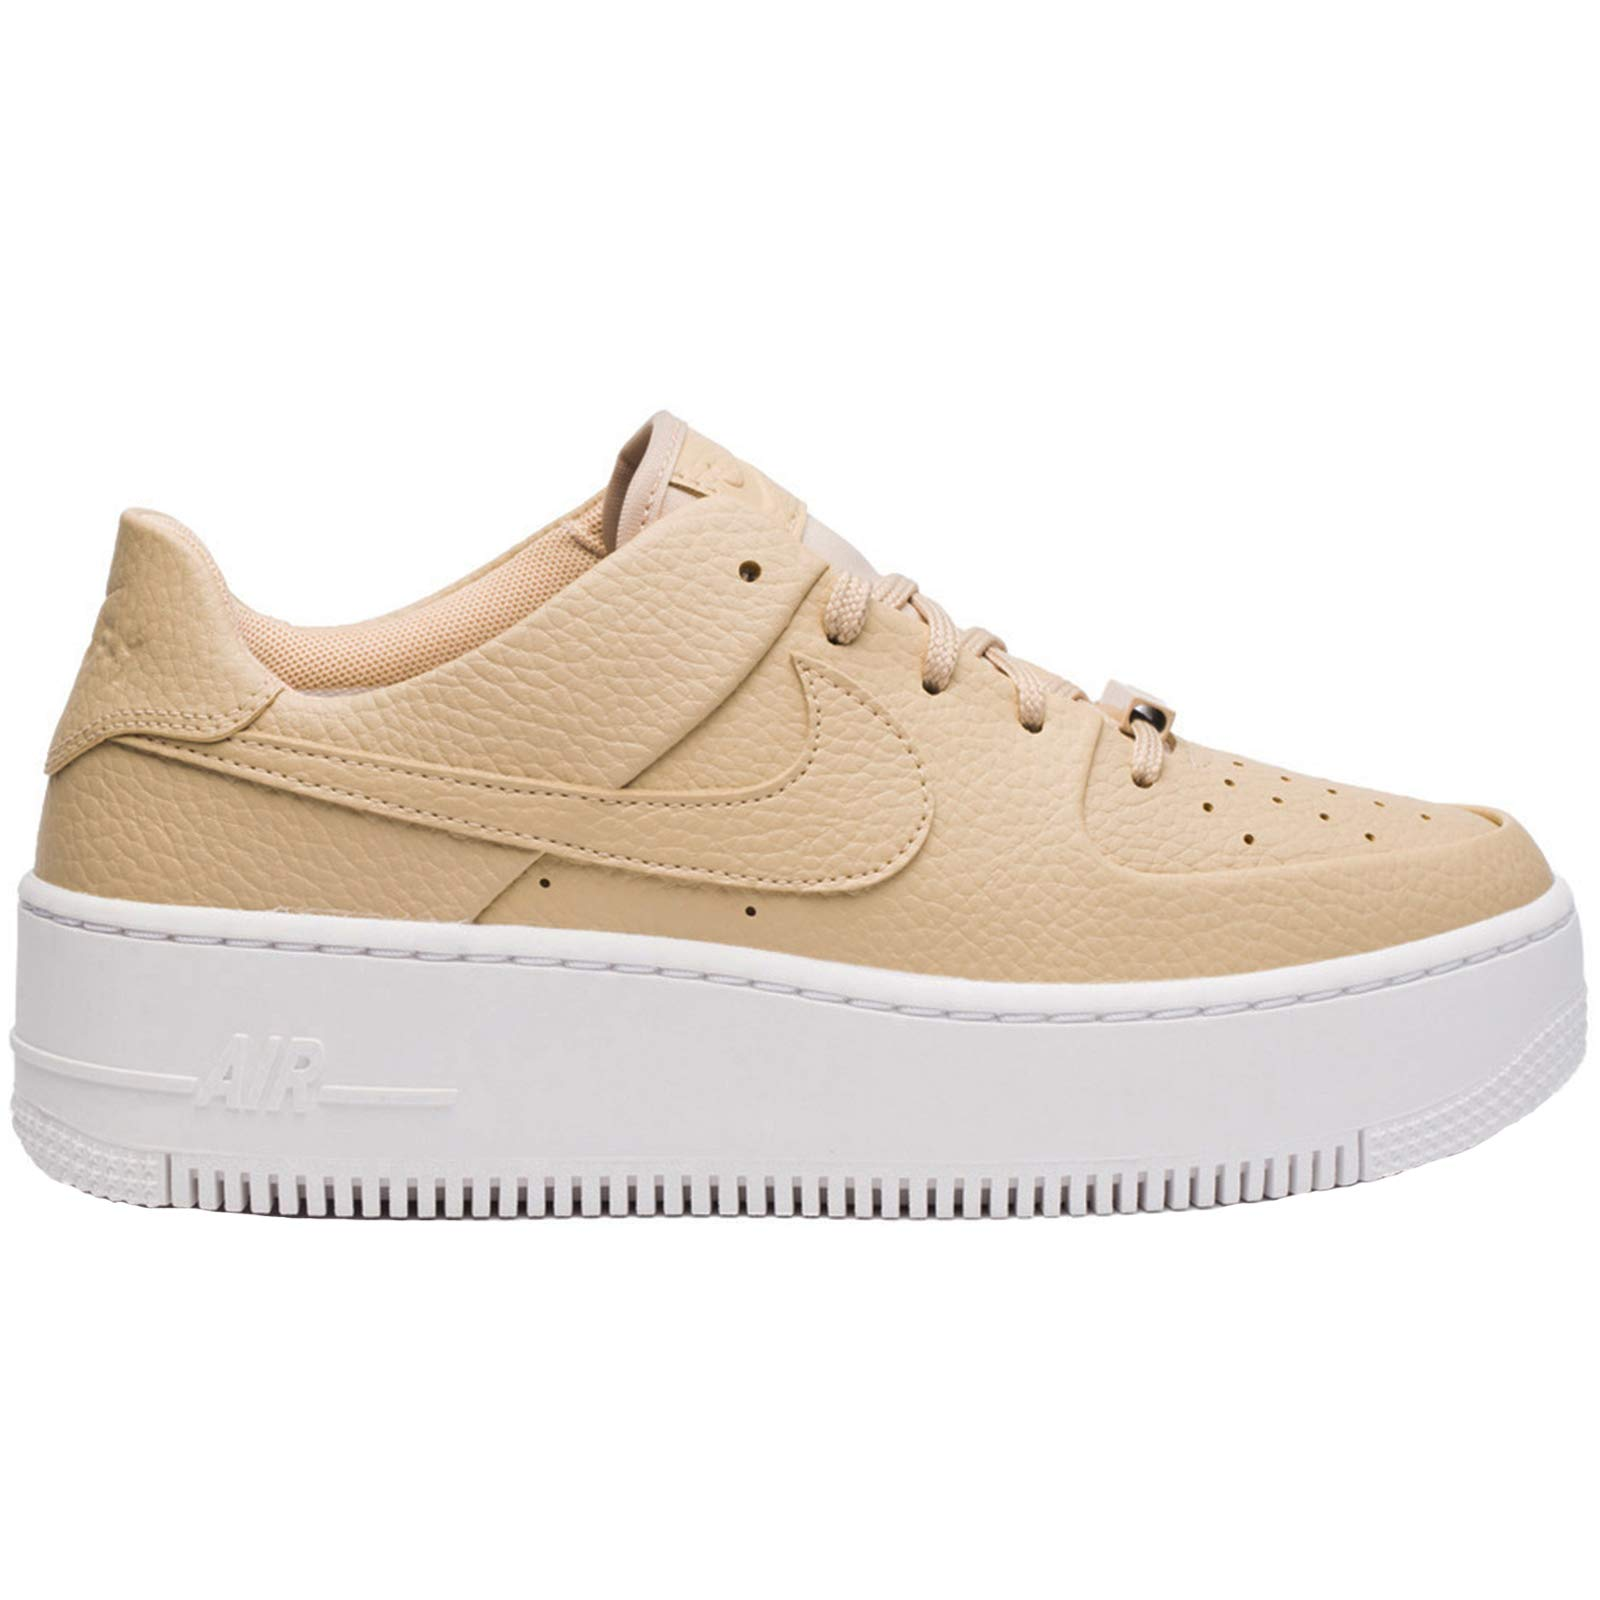 Nike Womens Air Force 1 Sage Low Leather Desert Ore White Trainers 8 US by Nike